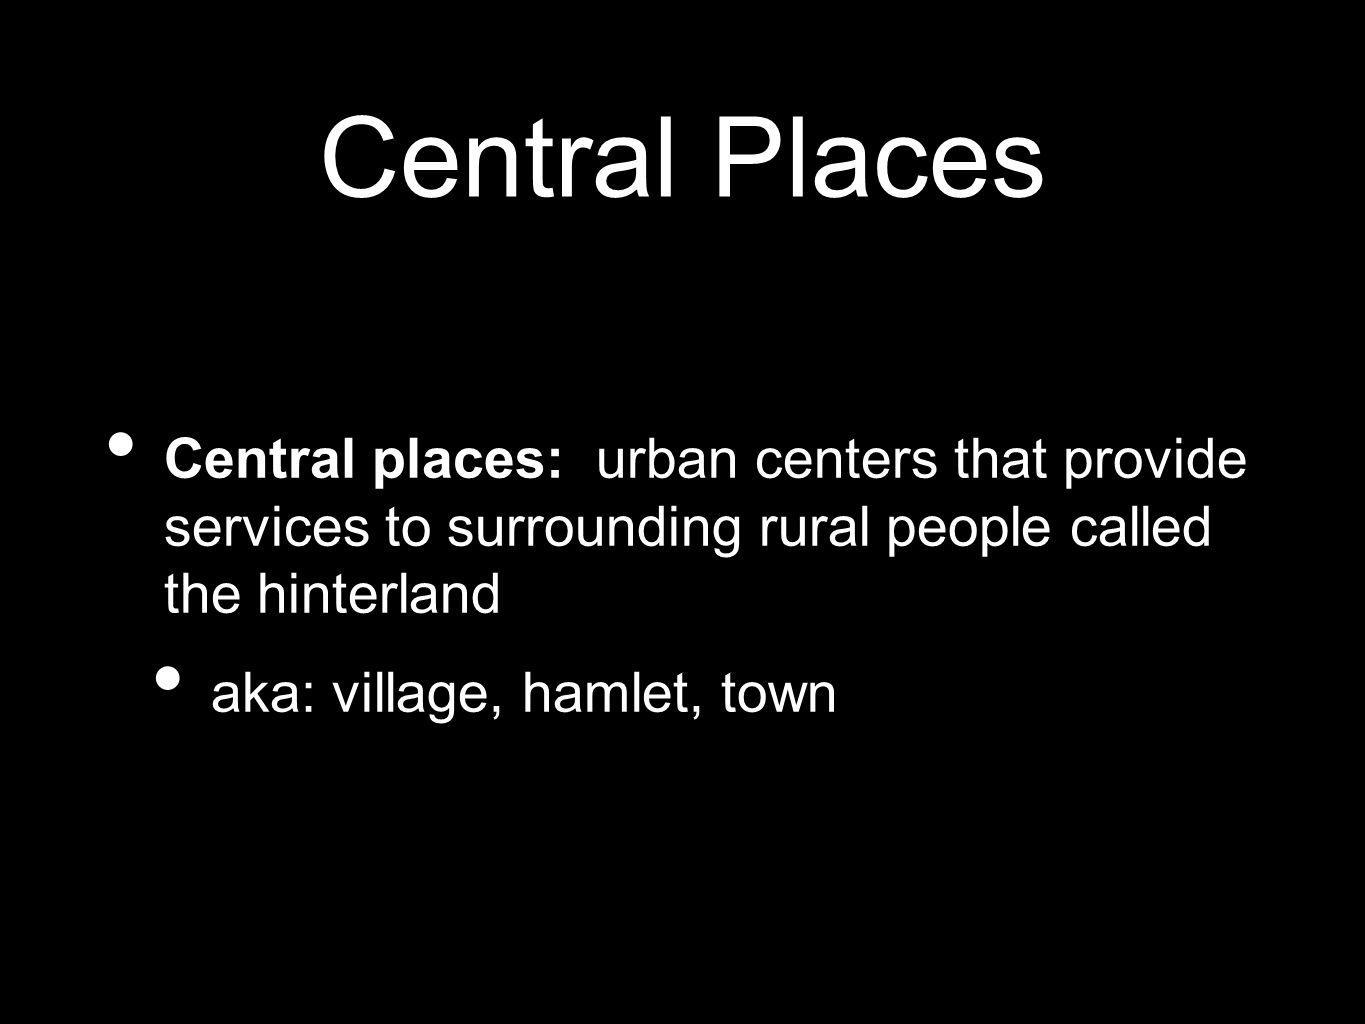 Central Places Central places: urban centers that provide services to surrounding rural people called the hinterland.